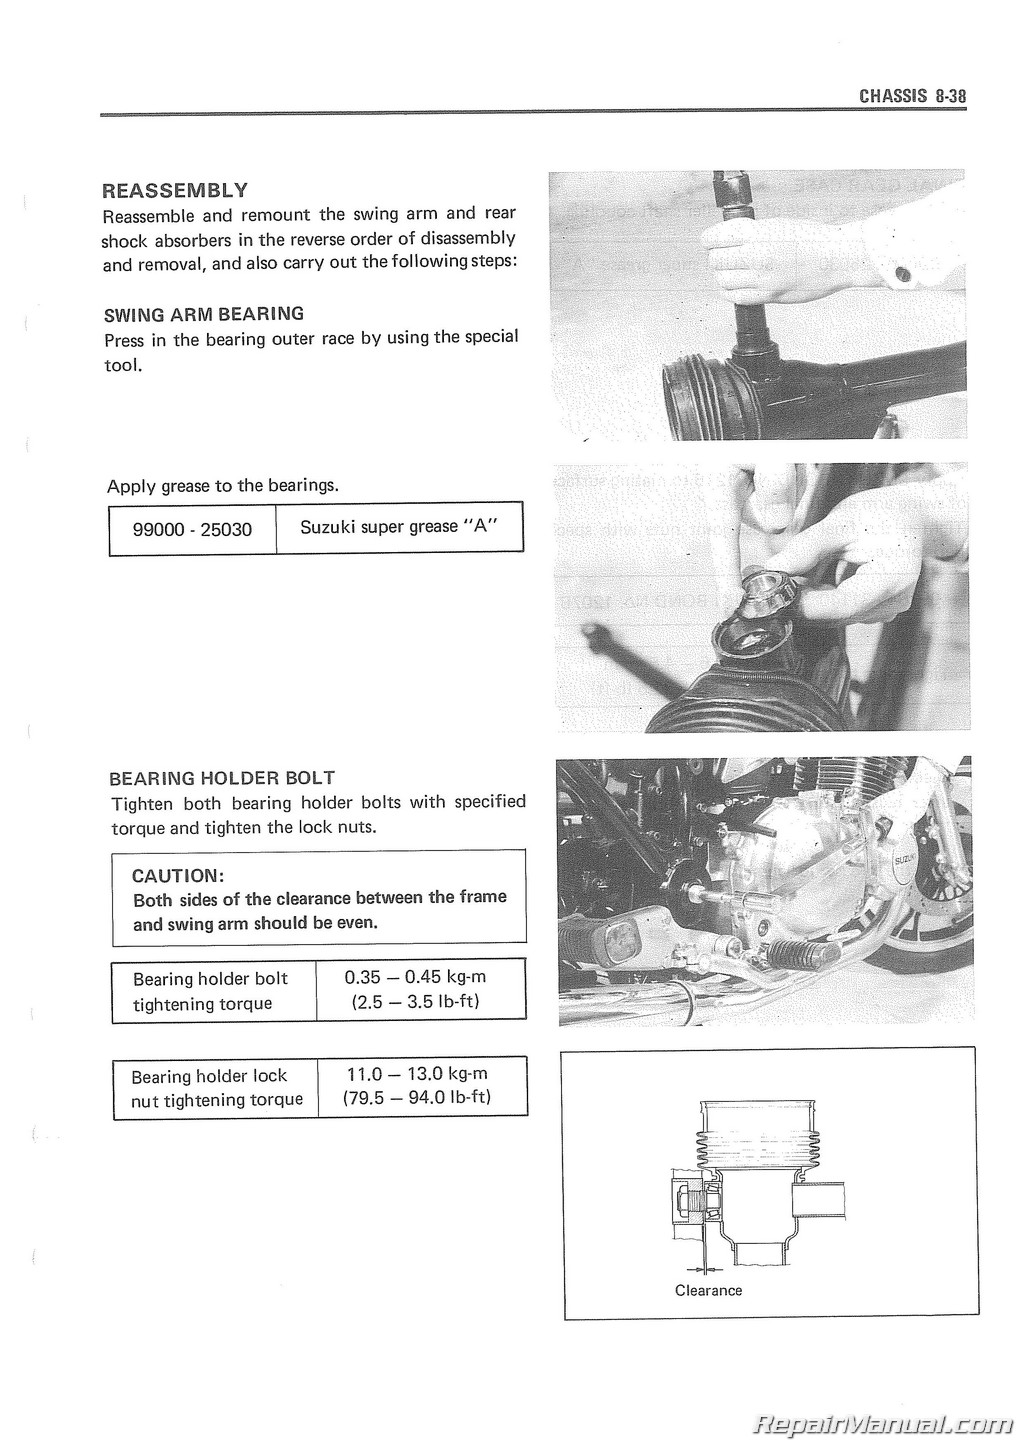 1983 1984 Suzuki Gs1100g Motorcycle Service Manual